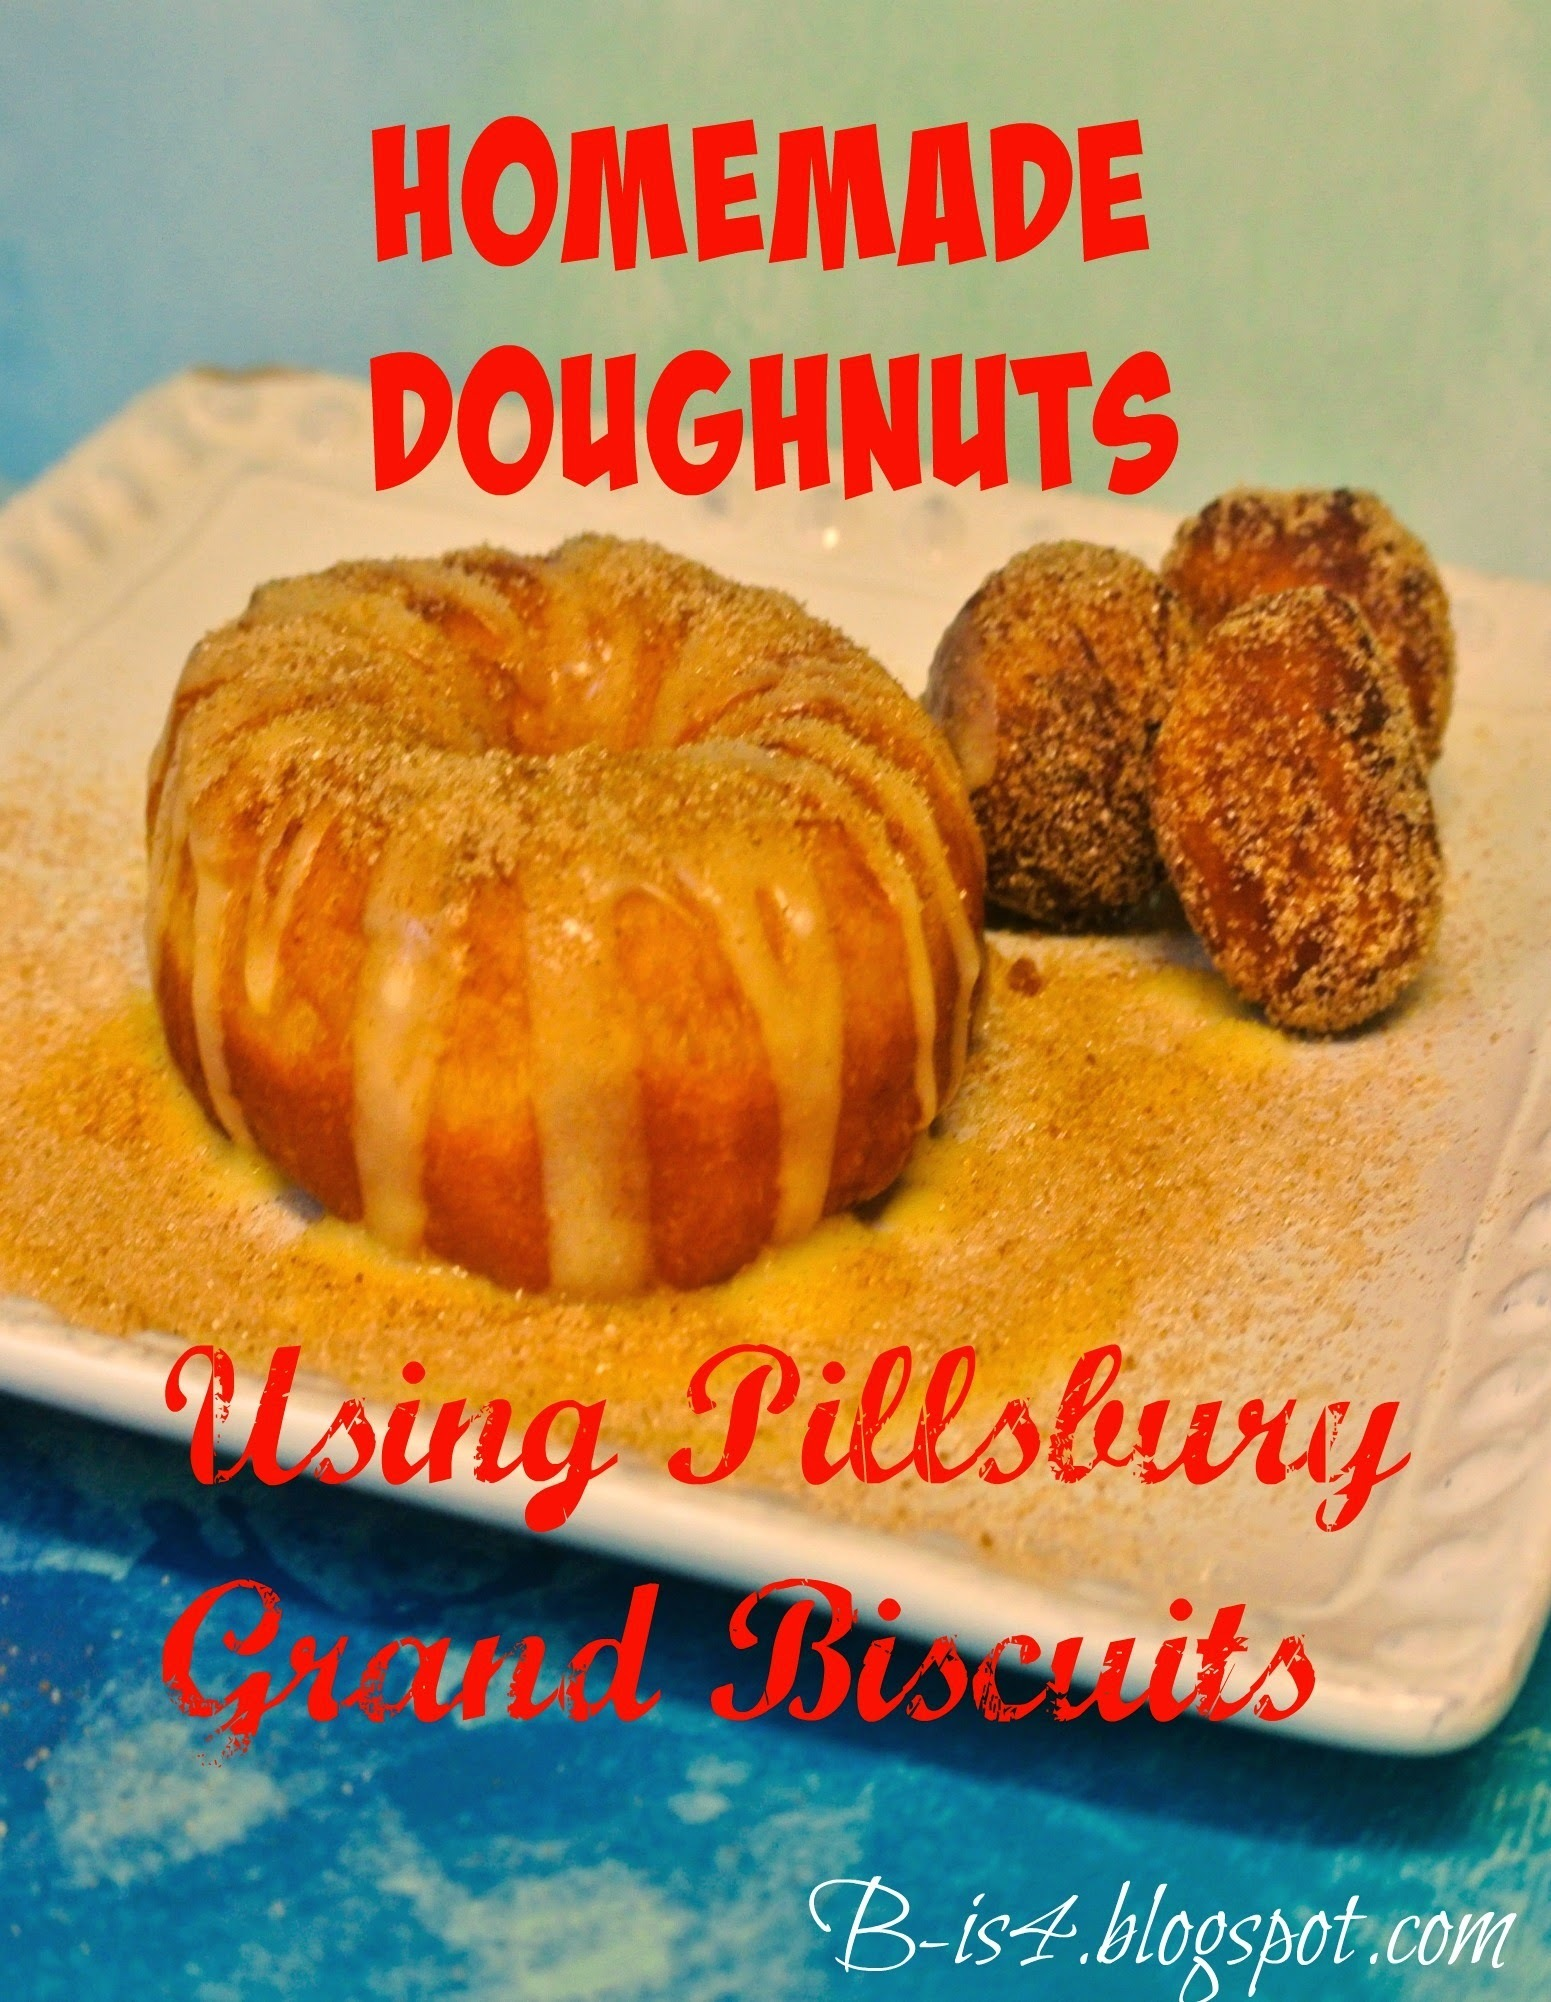 How to Make Homemade Doughnuts Using Pillsbury Biscuits and Giveaway